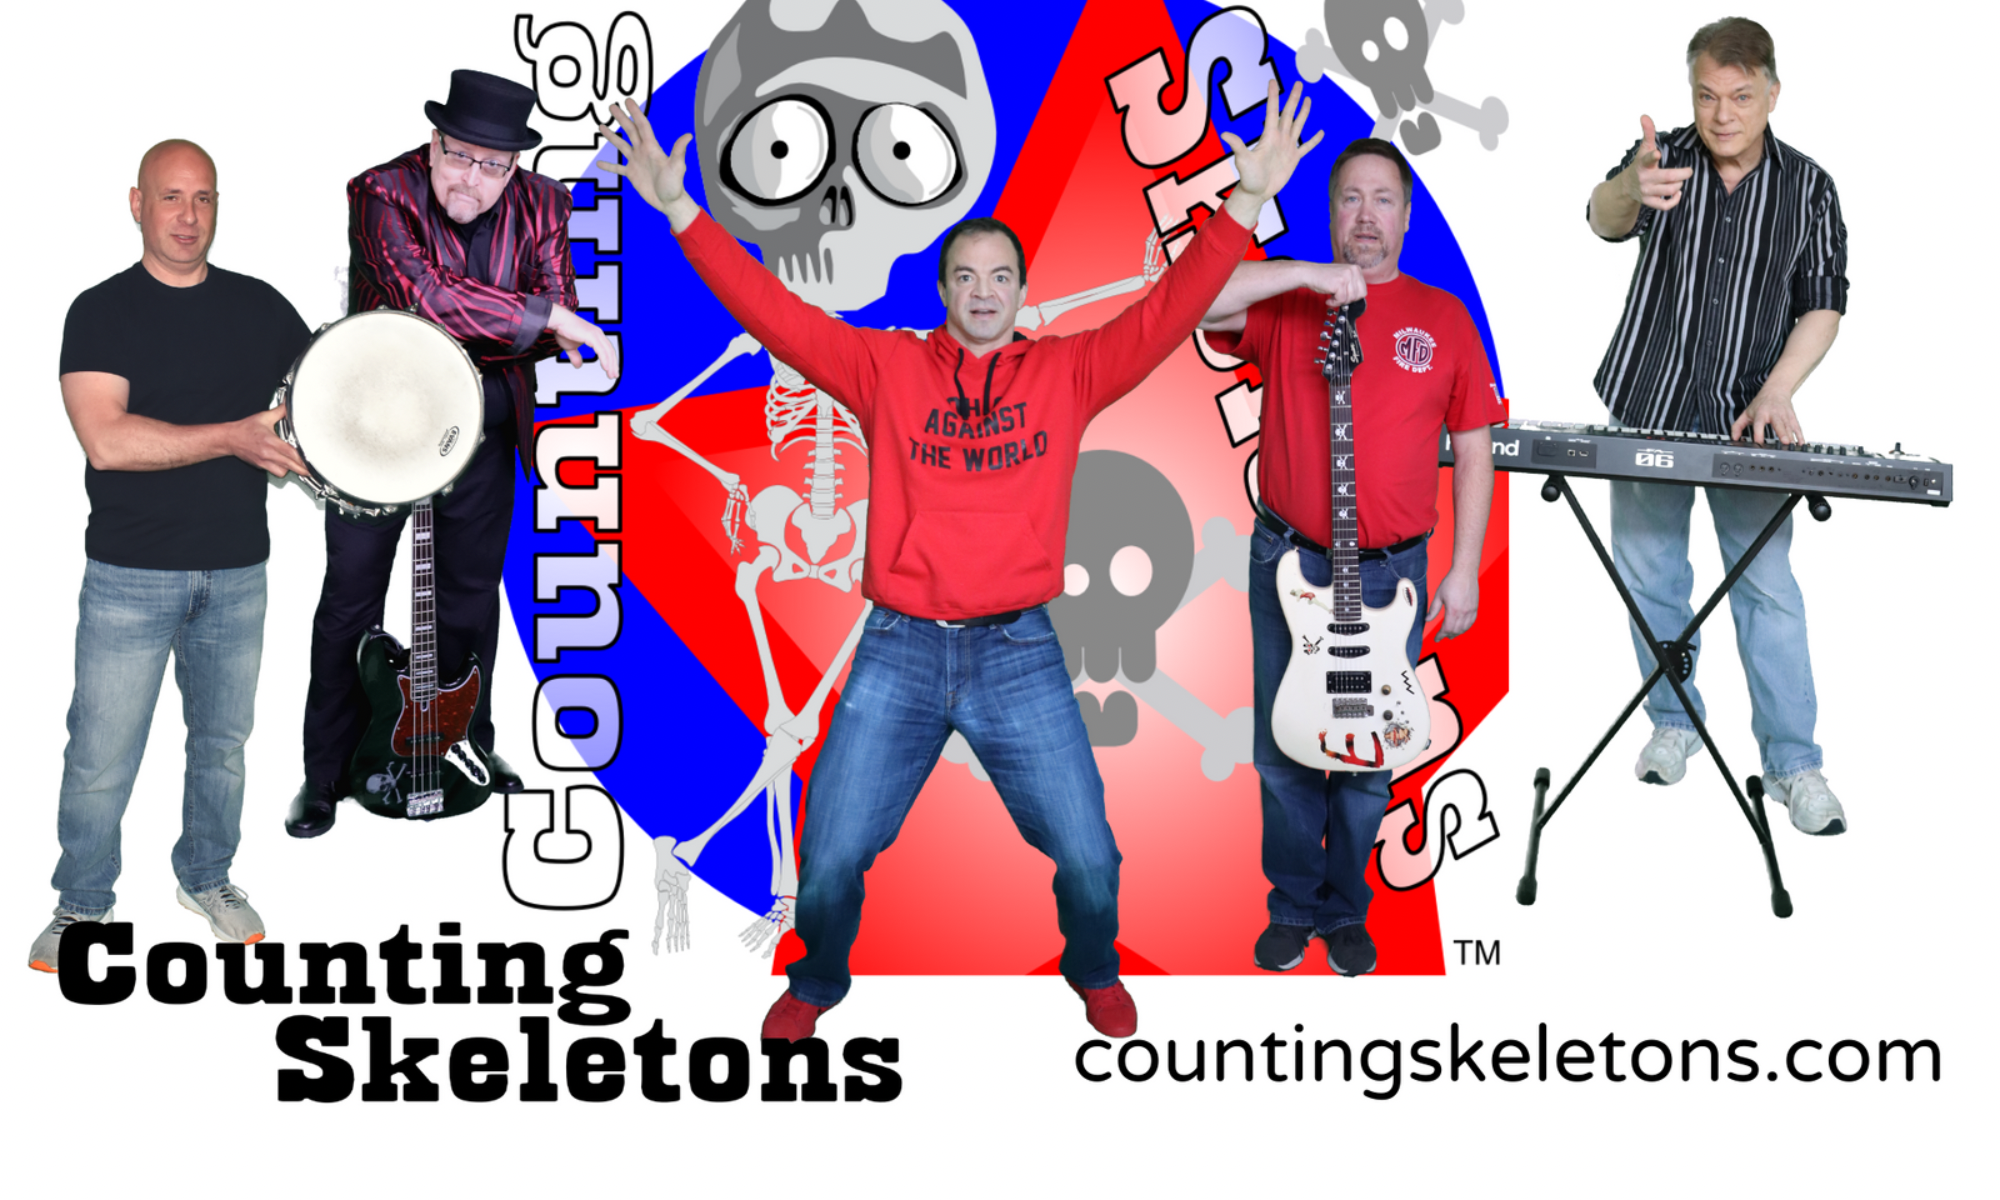 Counting Skeletons